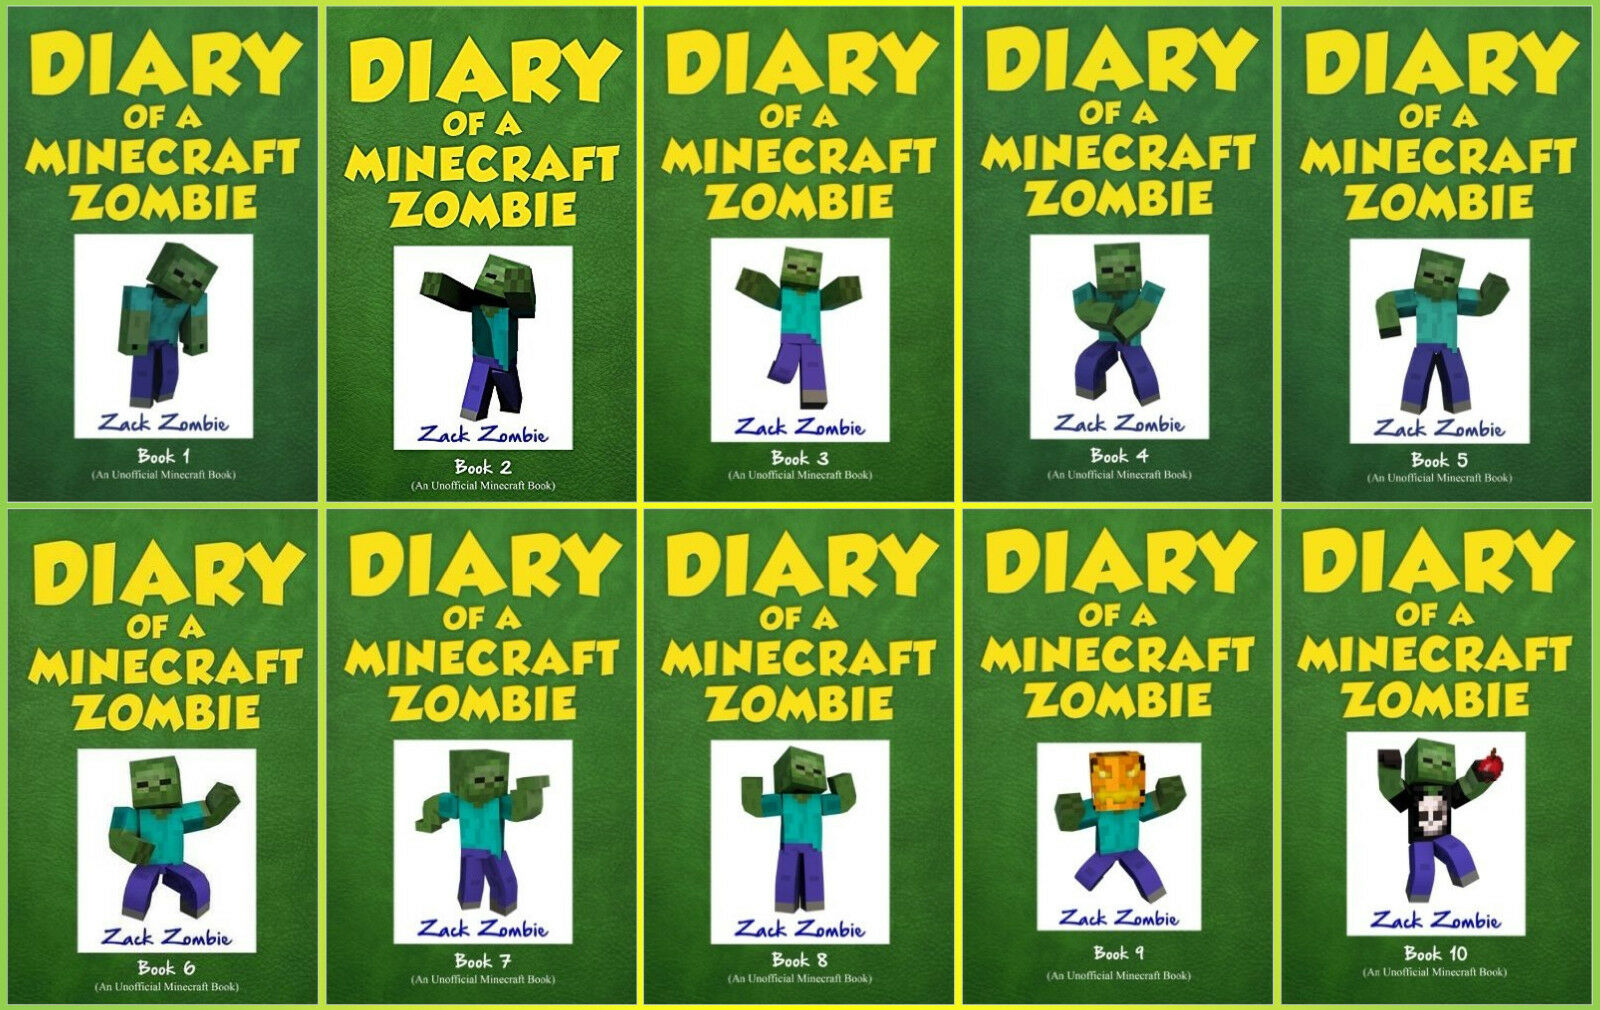 """Image for """"Diary of a Minecraft Zombie 1-10 by Zombie, Zack"""""""